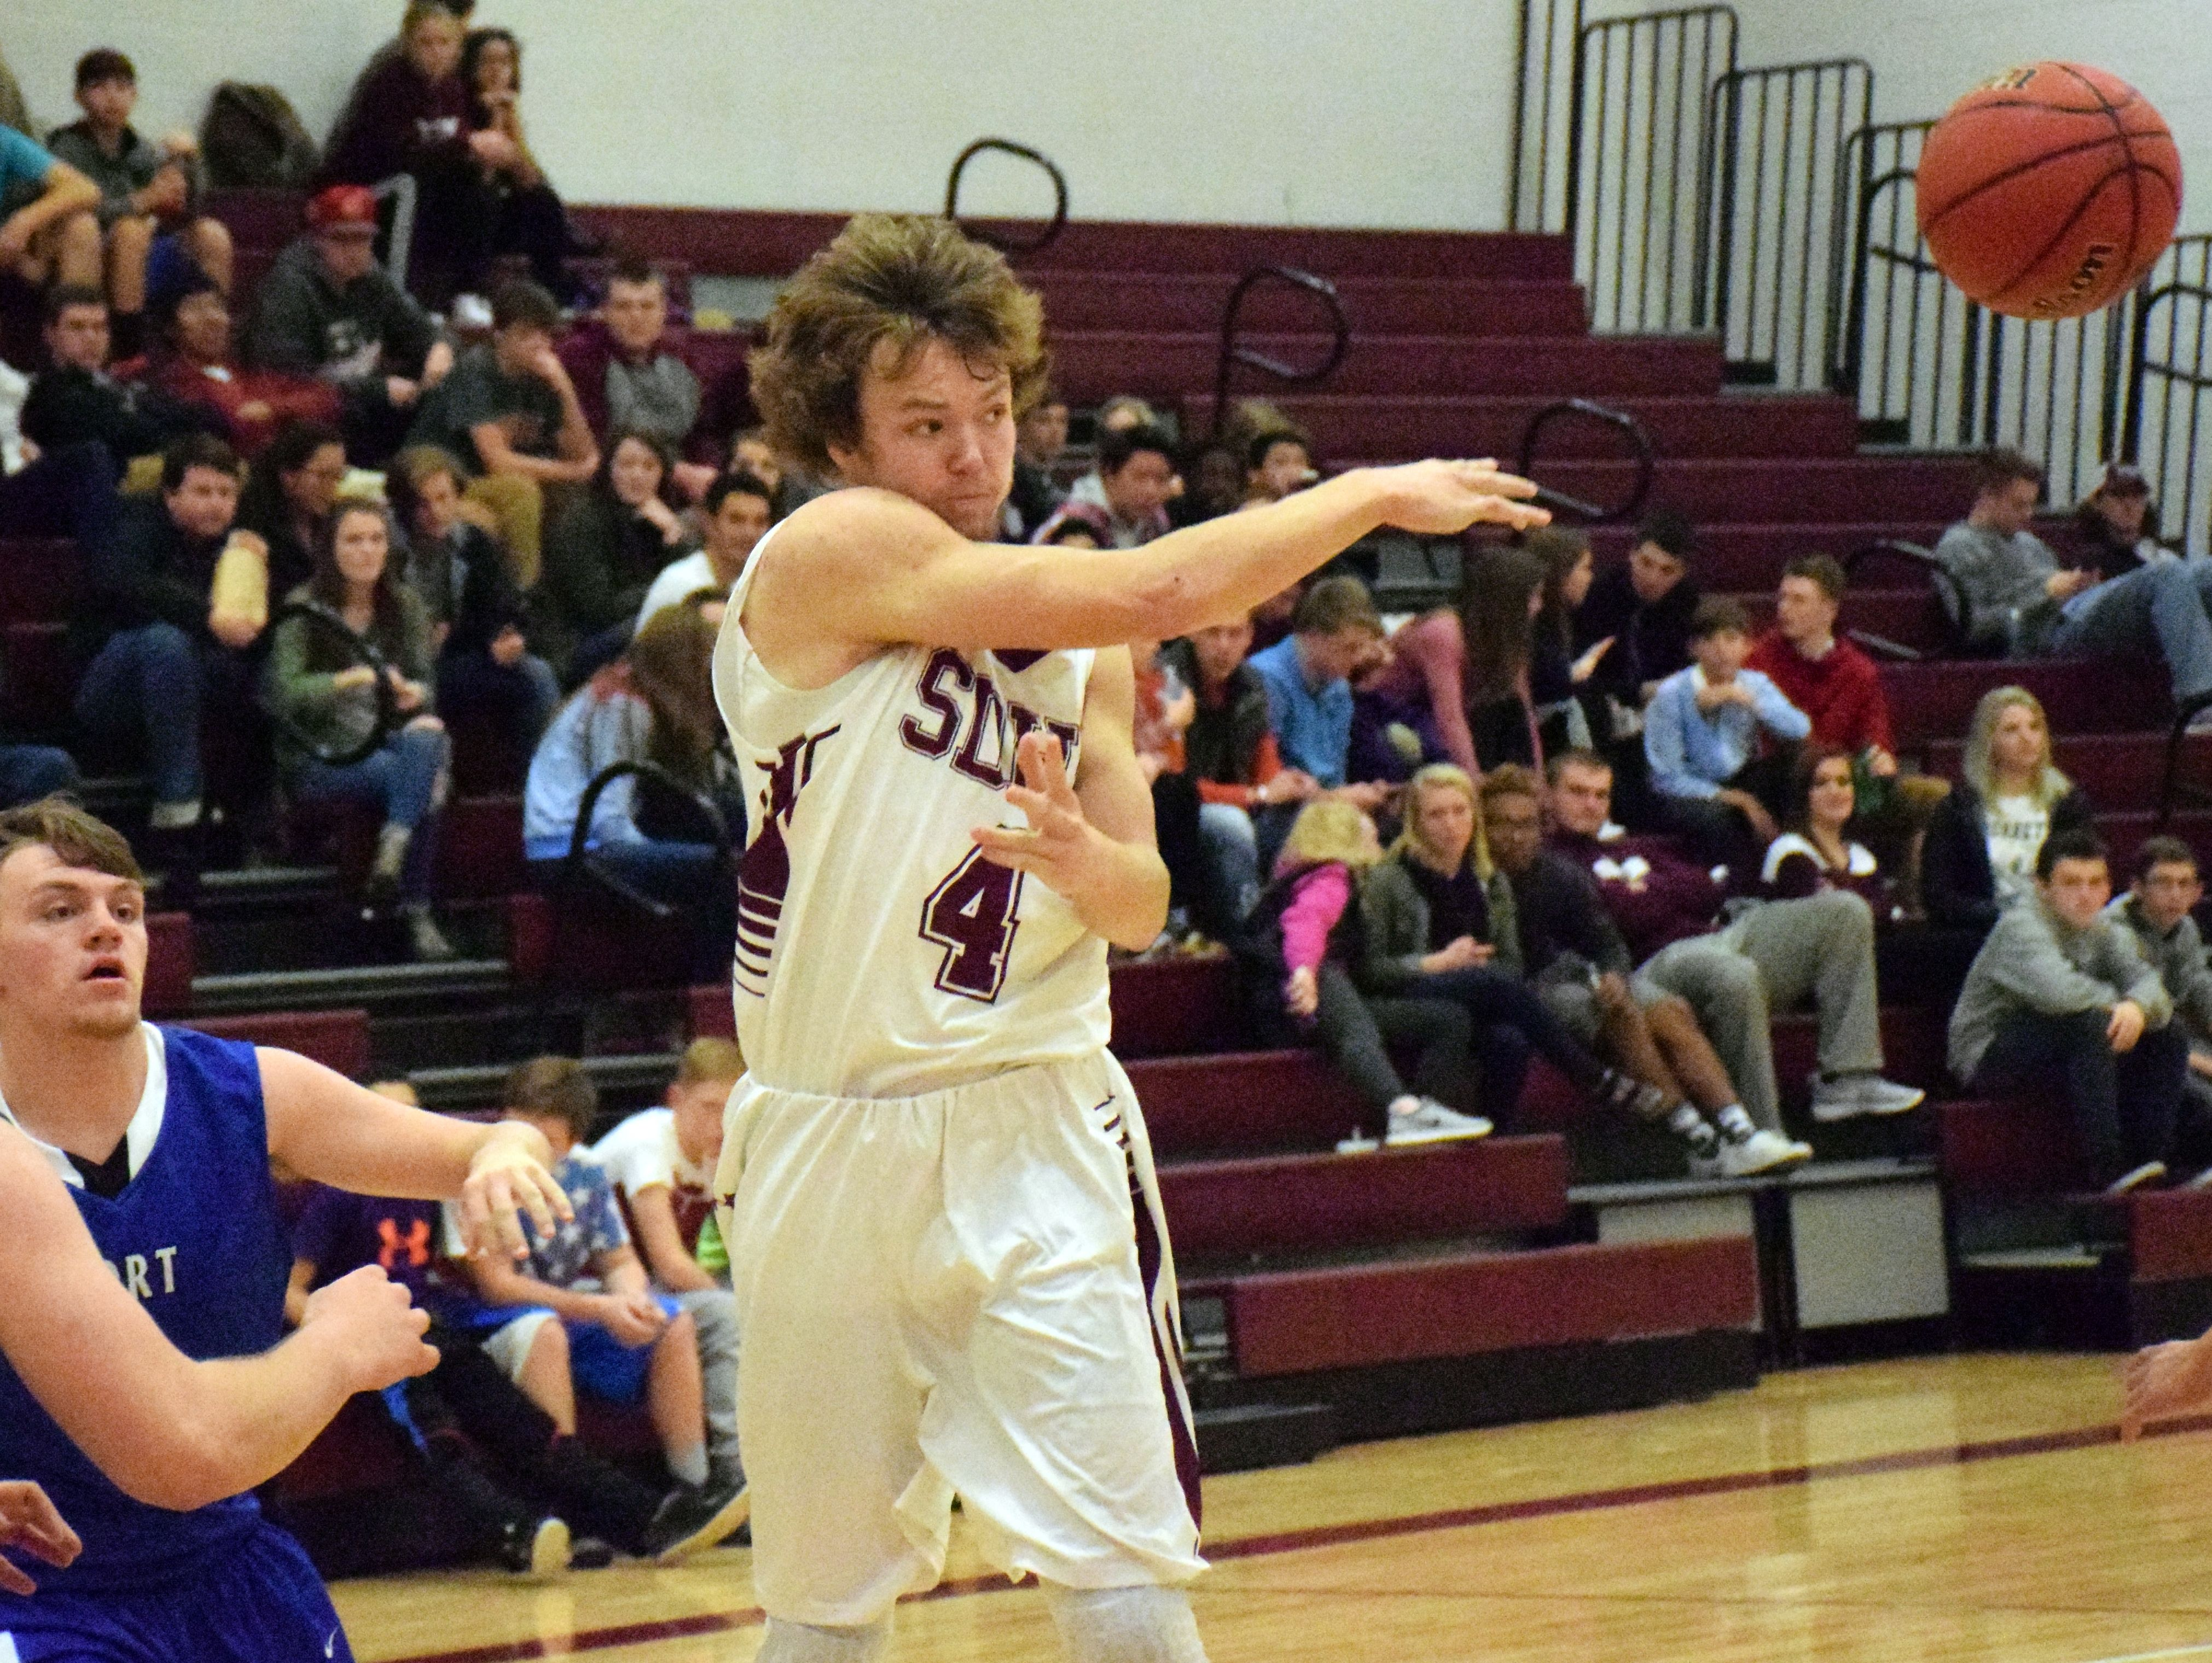 Stuarts Draft's Dalton McGann, left, makes a pass to a teammate during the first half of the Cougars' boys basketball game against Fort Defiance on Tuesday, Dec. 13, 2016, at Stuarts Draft High School in Stuarts Draft, Va.